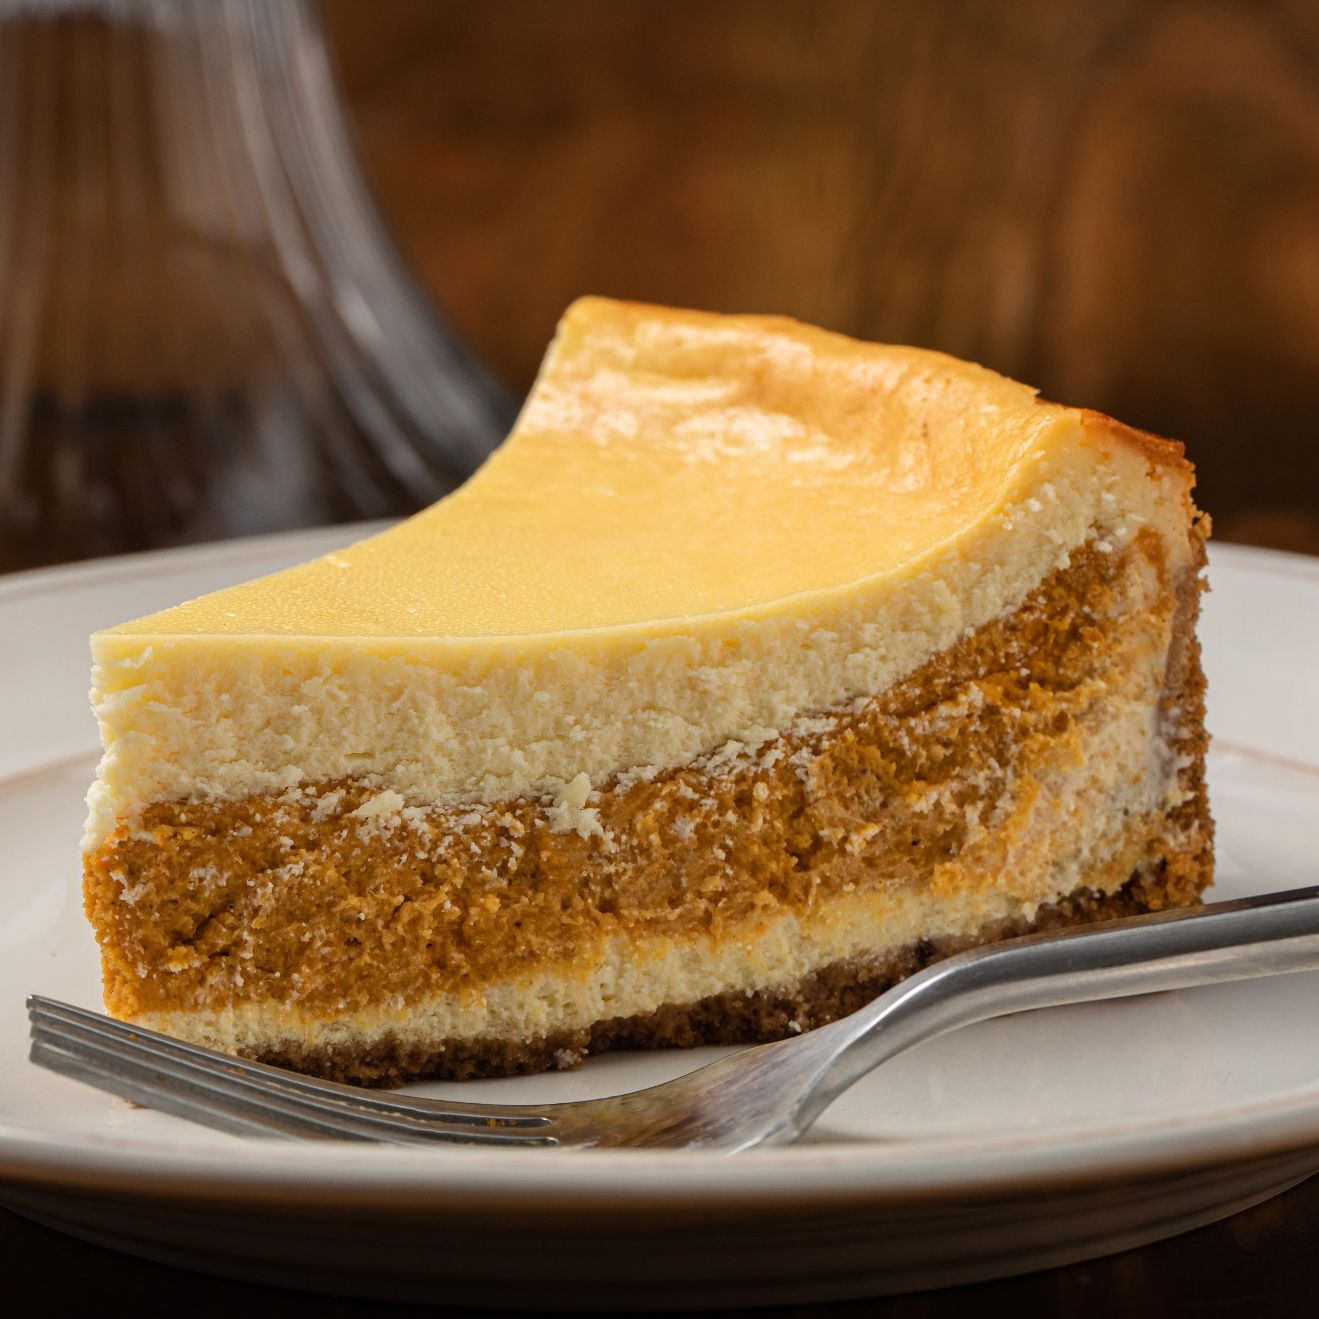 pumpkin_cheese_cake_3982.jpg